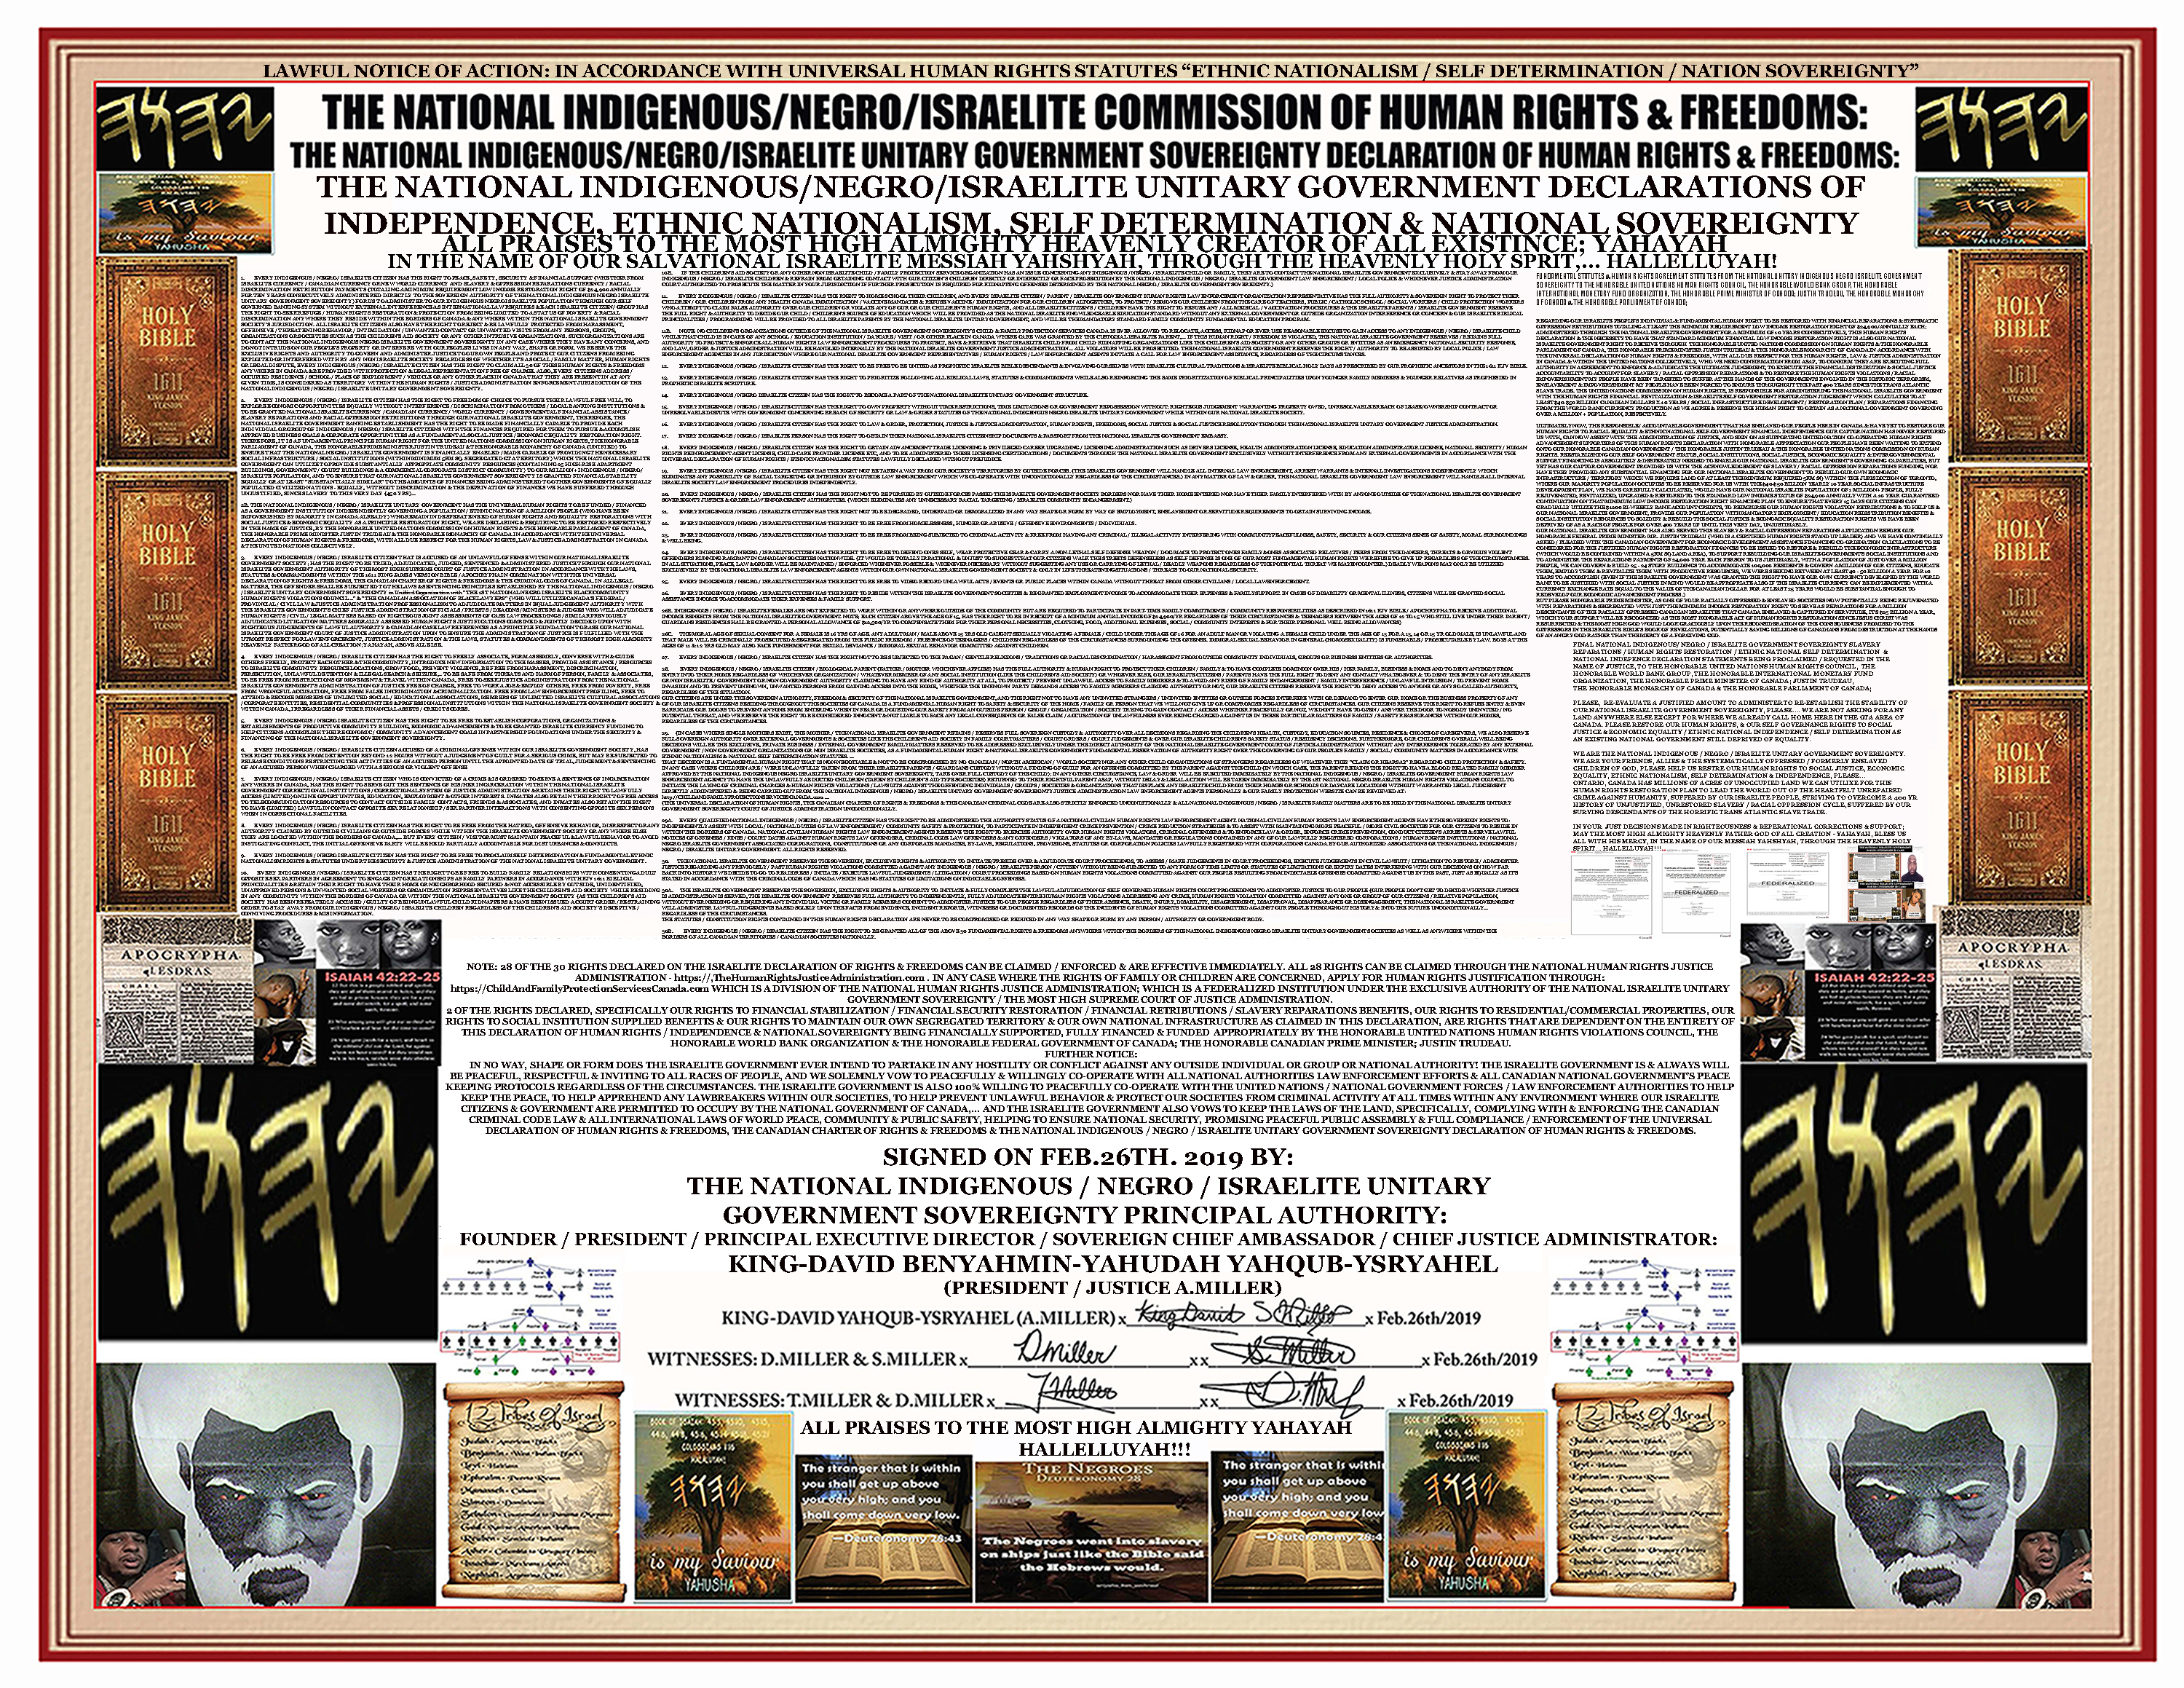 OFFICIAL9 DECLARATION OF NATIONAL ISRAELITE RIGHTS & FREEDOMS9B